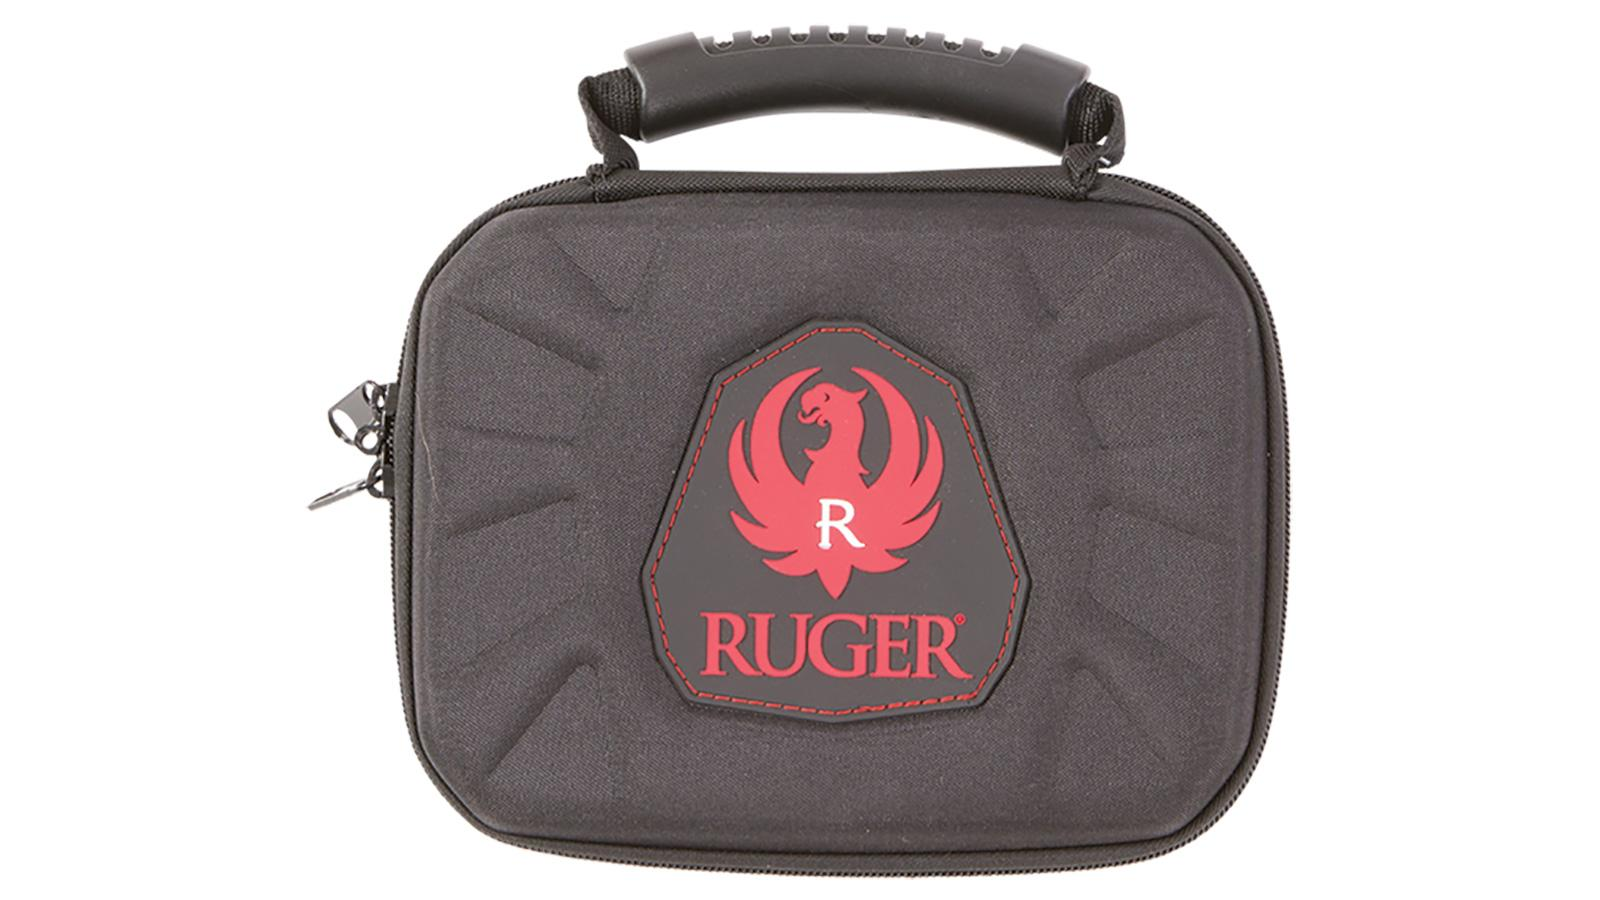 Allen 27307 Ruger Blockade Handgun Case 7in